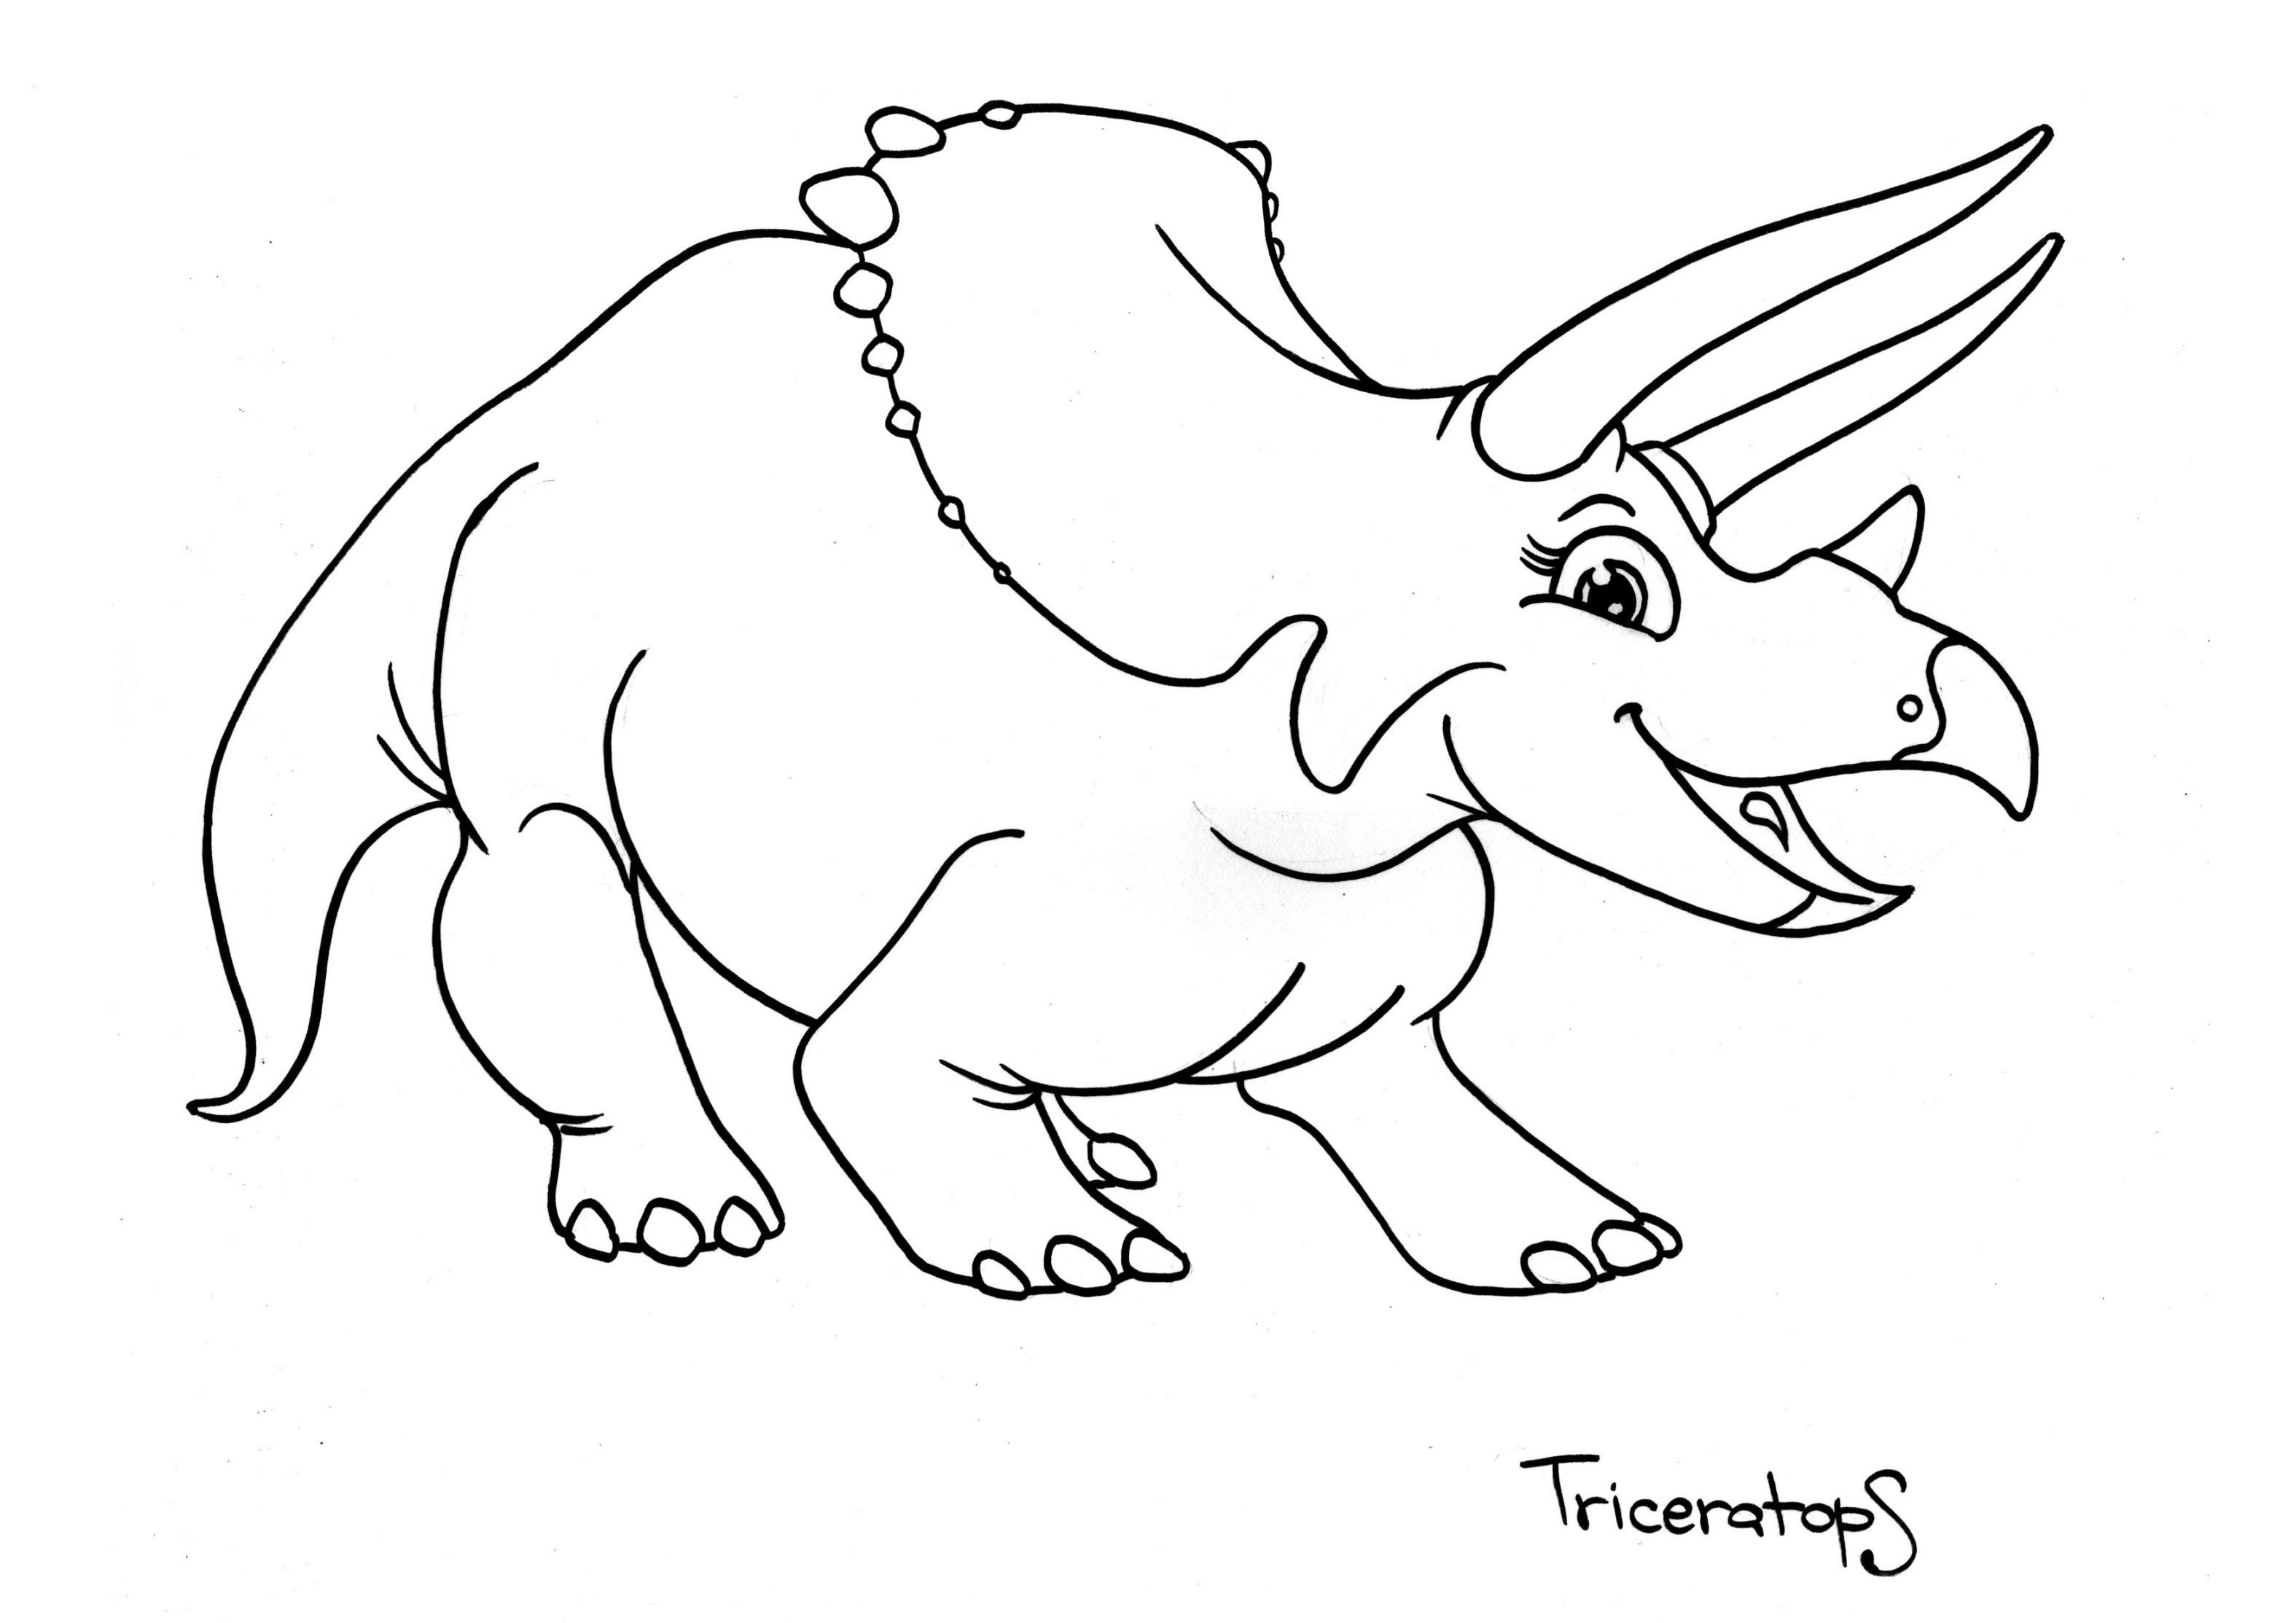 colouring in dinosaurs jurassic world dinosaur coloring pages at getcoloringscom in colouring dinosaurs